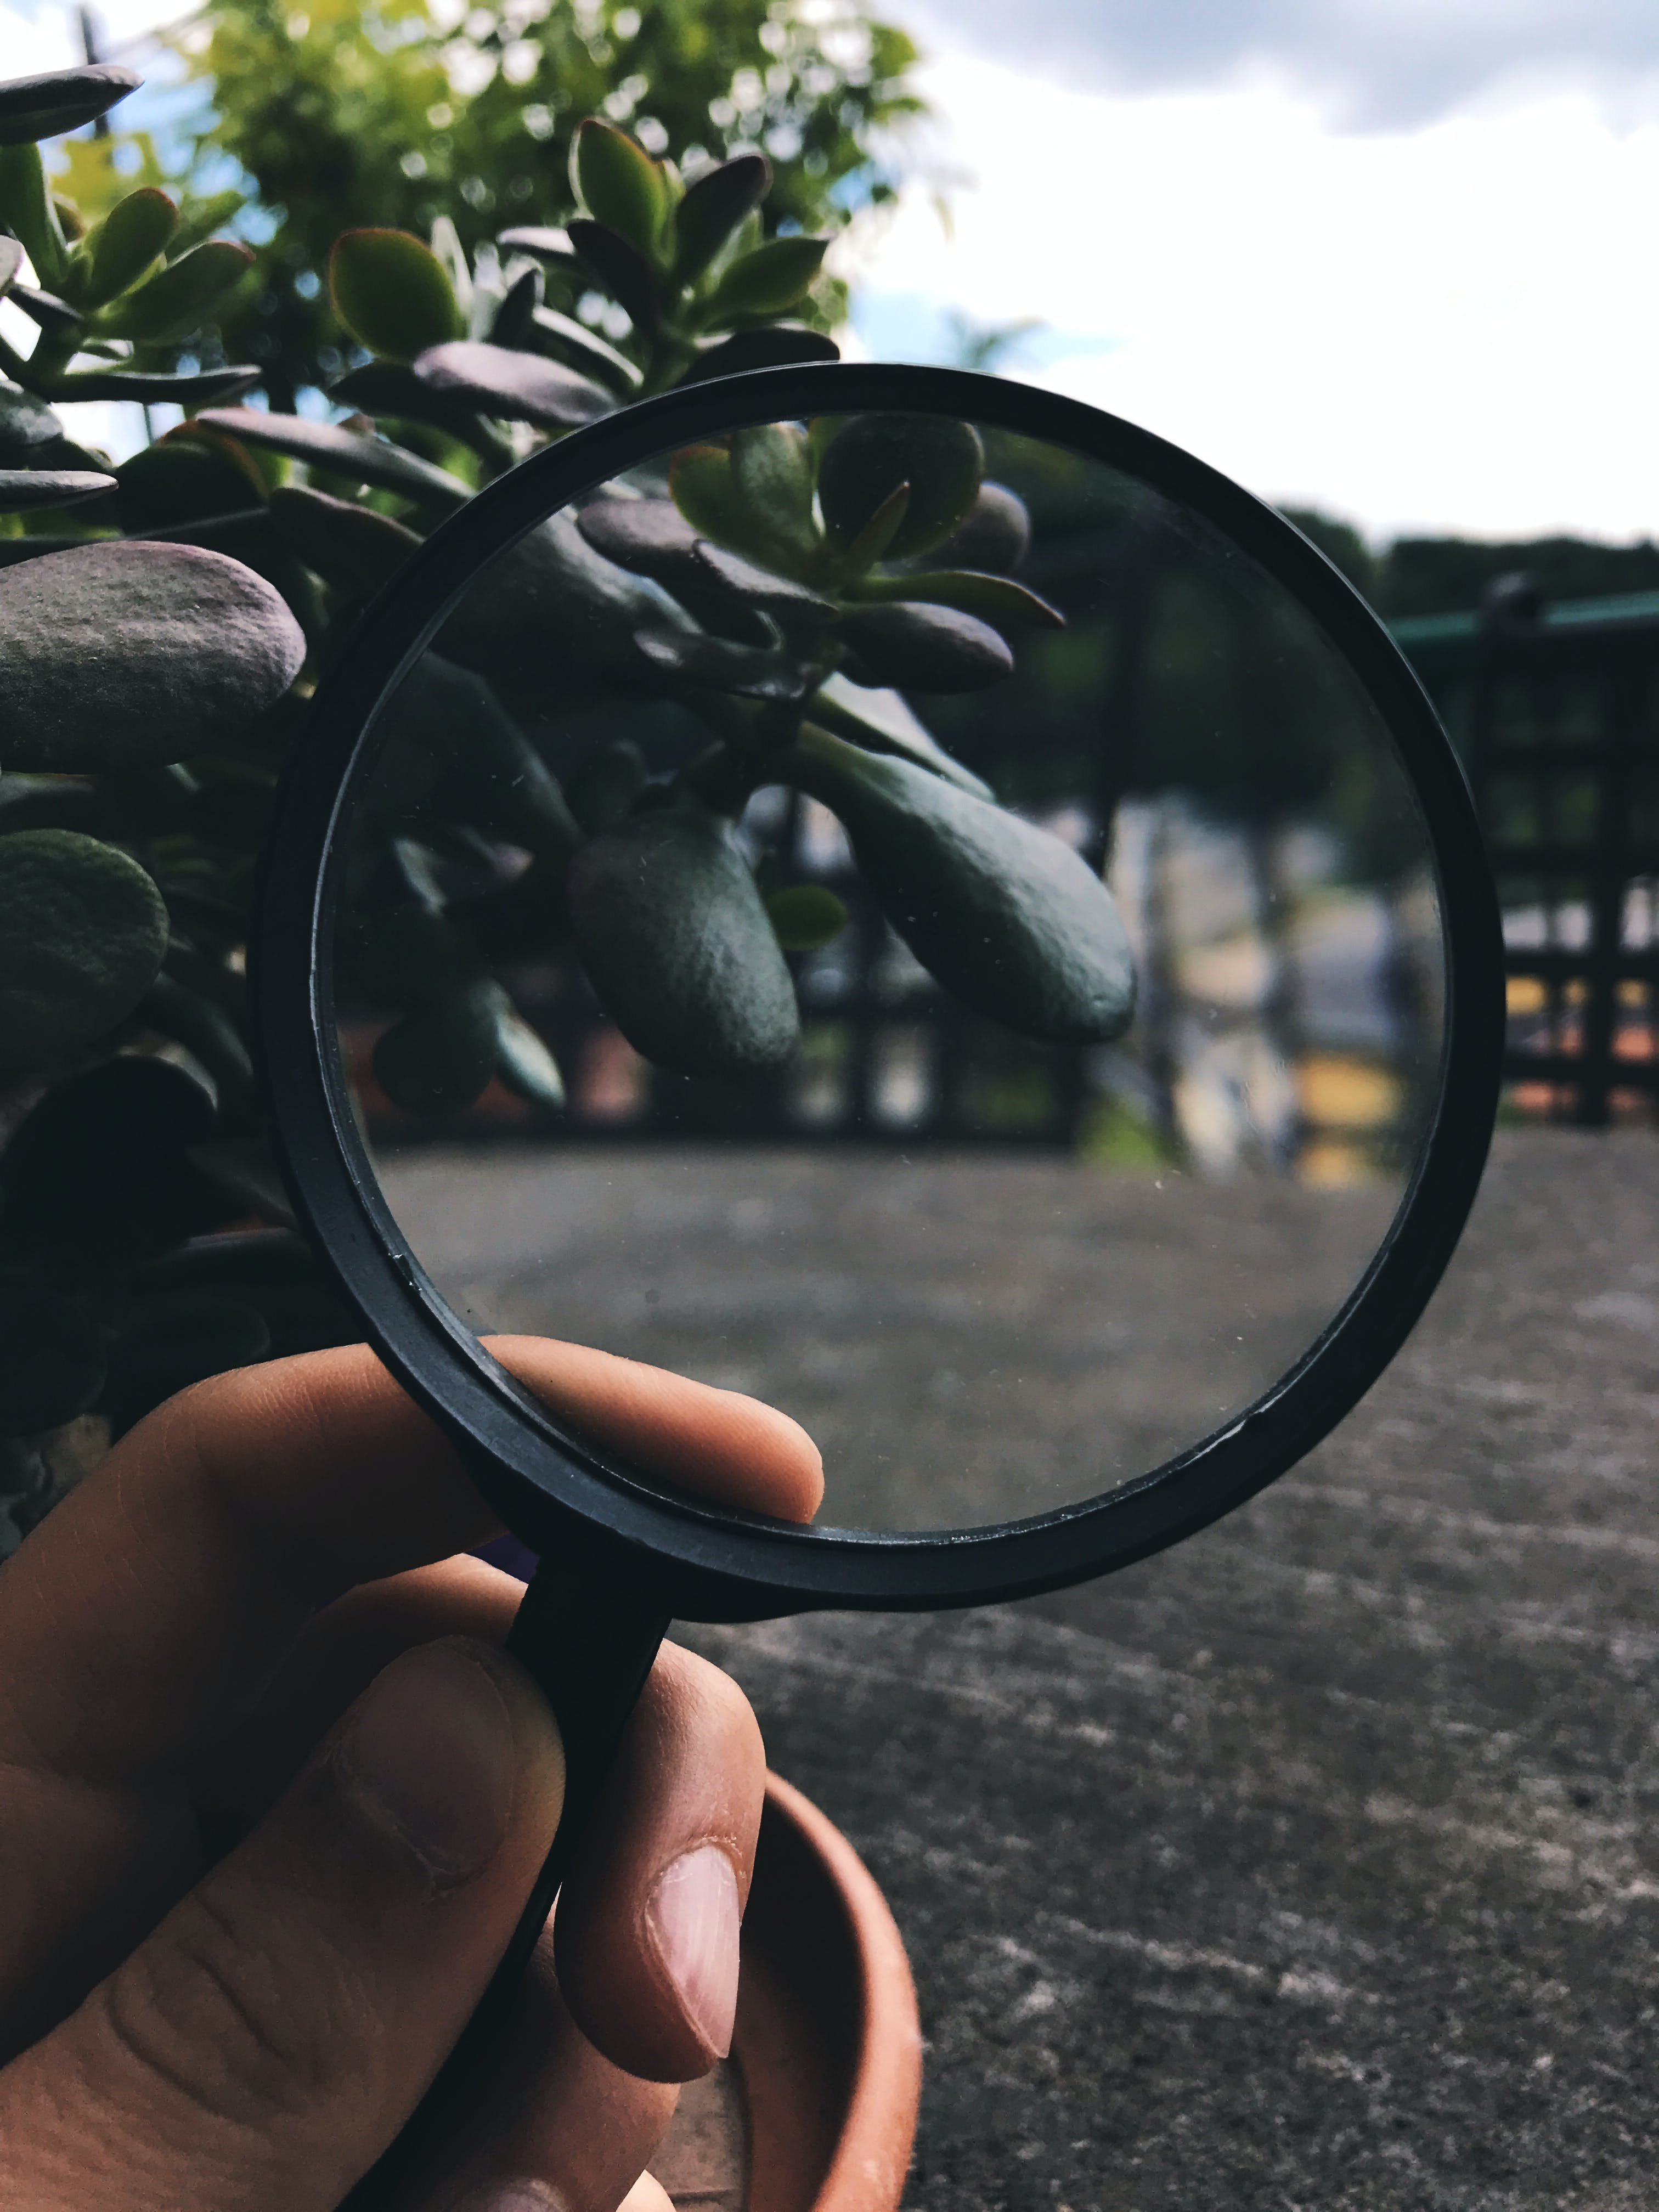 Free stock photo of green, lens, mother nature, nature